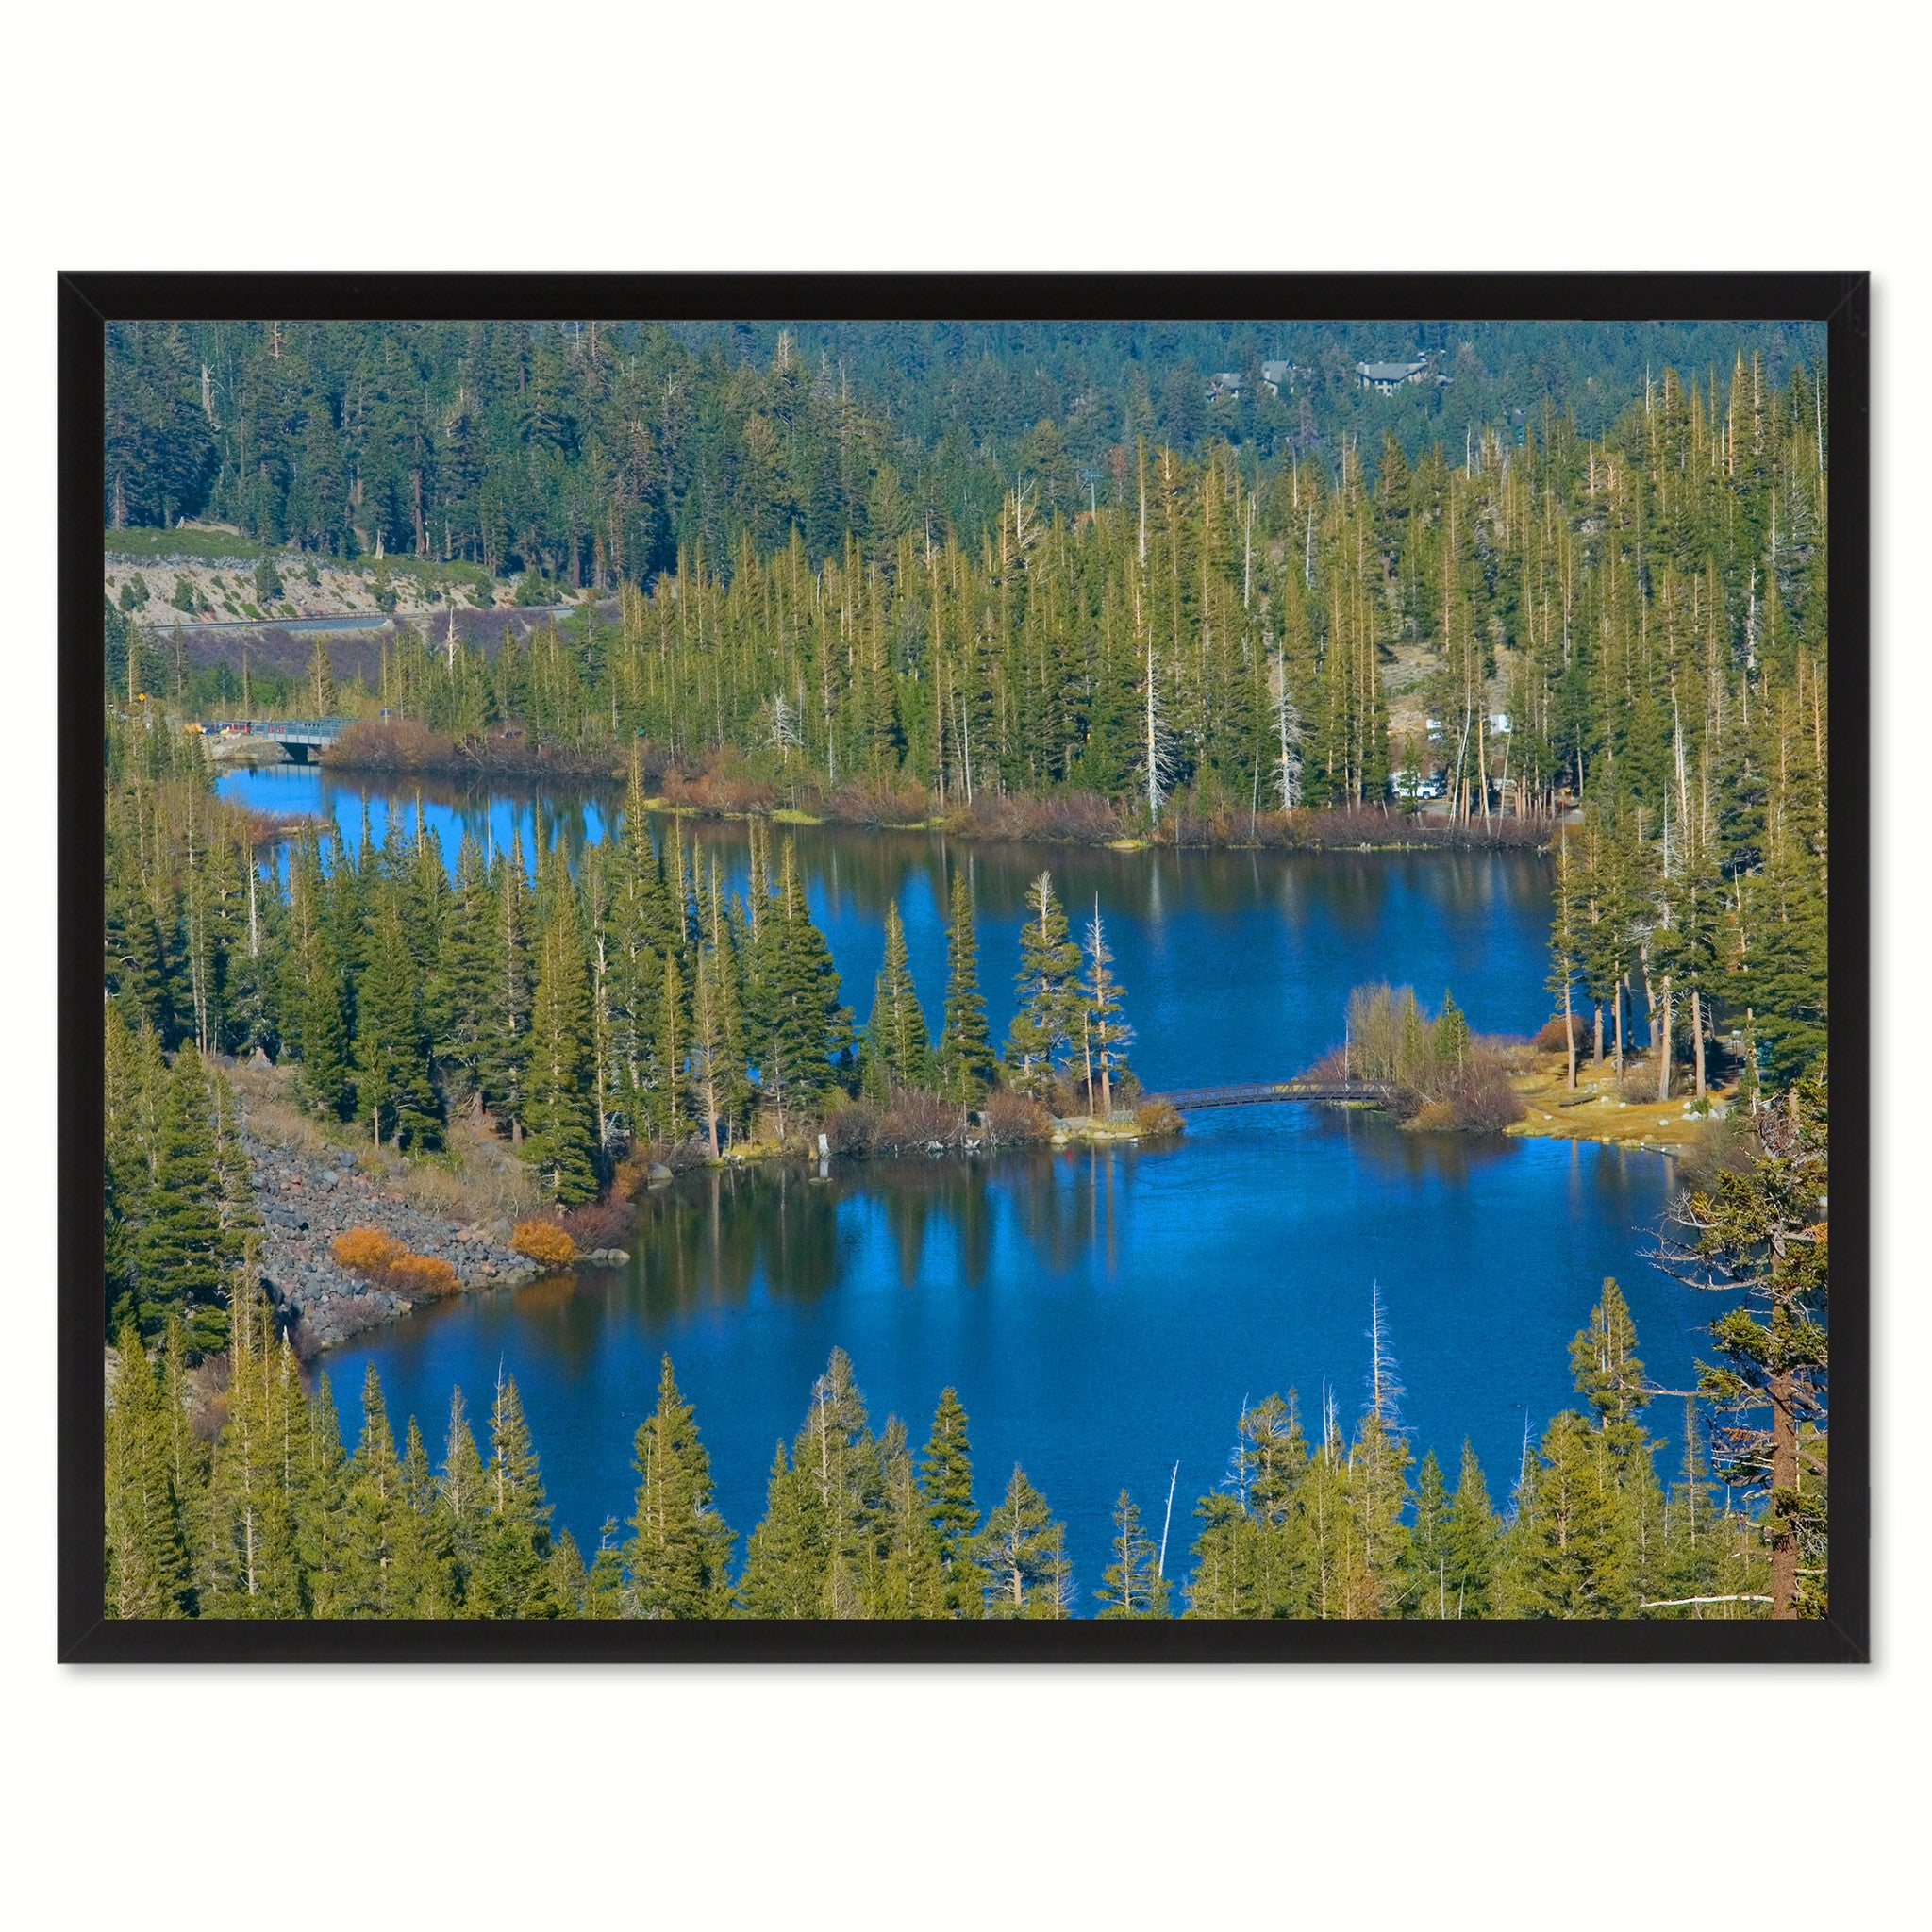 Twin Lake Mammoth Landscape Photo Canvas Print Pictures Frames Home Décor Wall Art Gifts